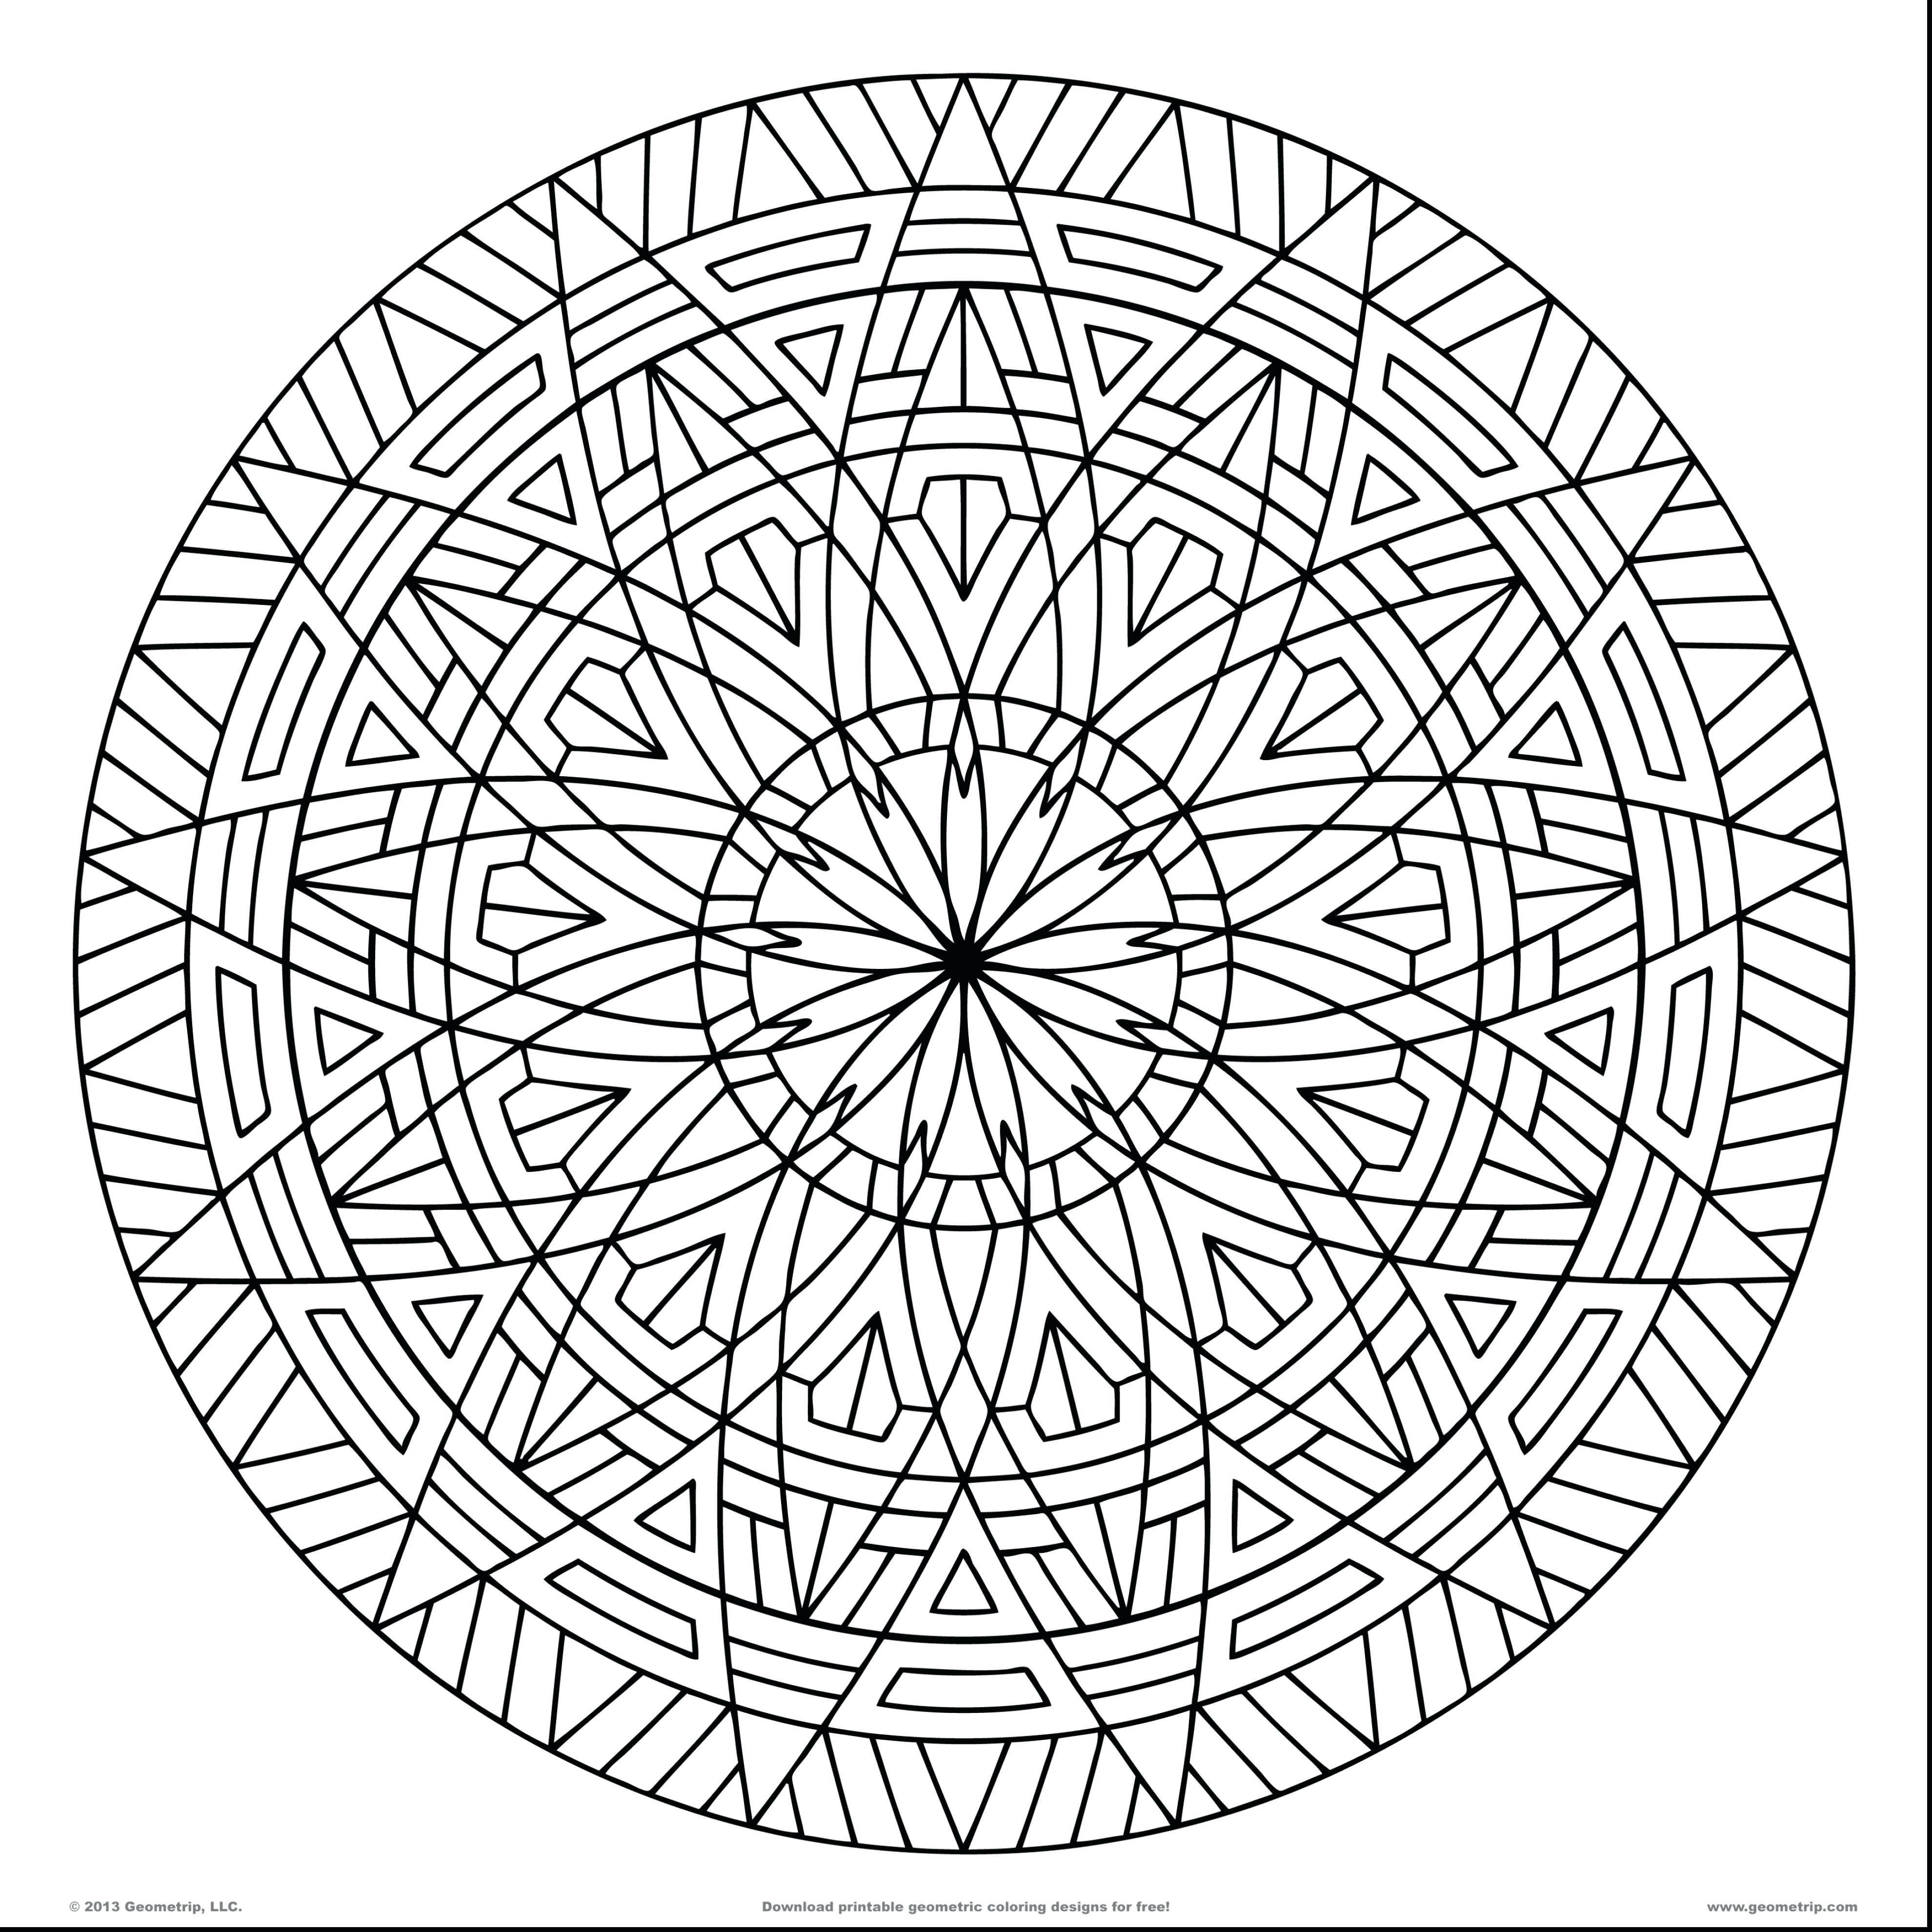 Aztec Design Coloring Pages At Getdrawings Com Free For Personal